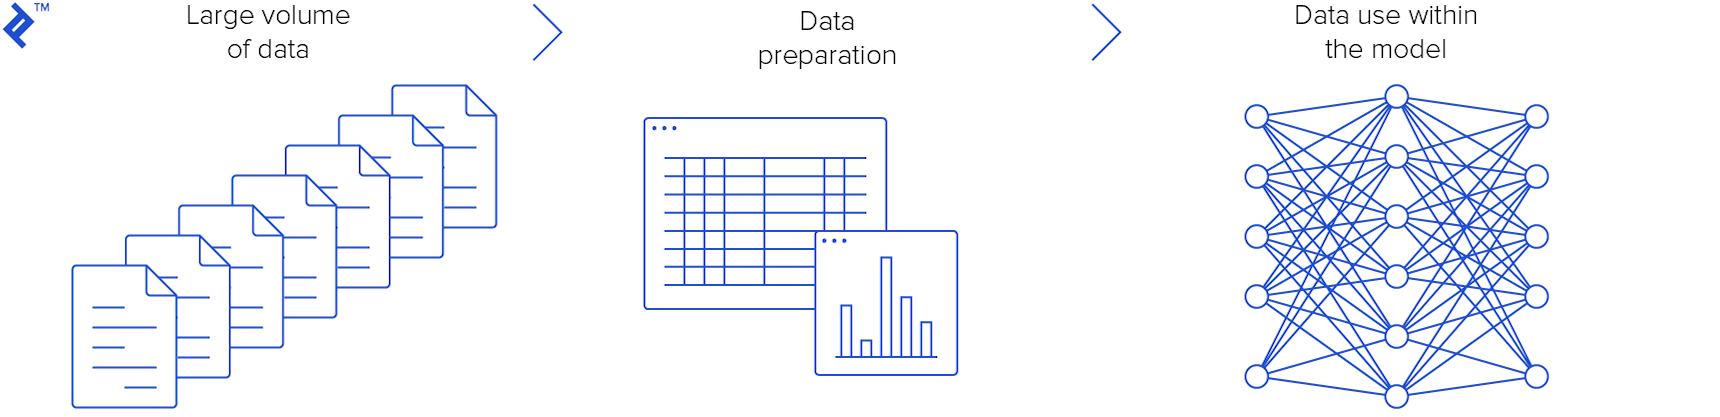 Data preparation is a key step in AI project management.